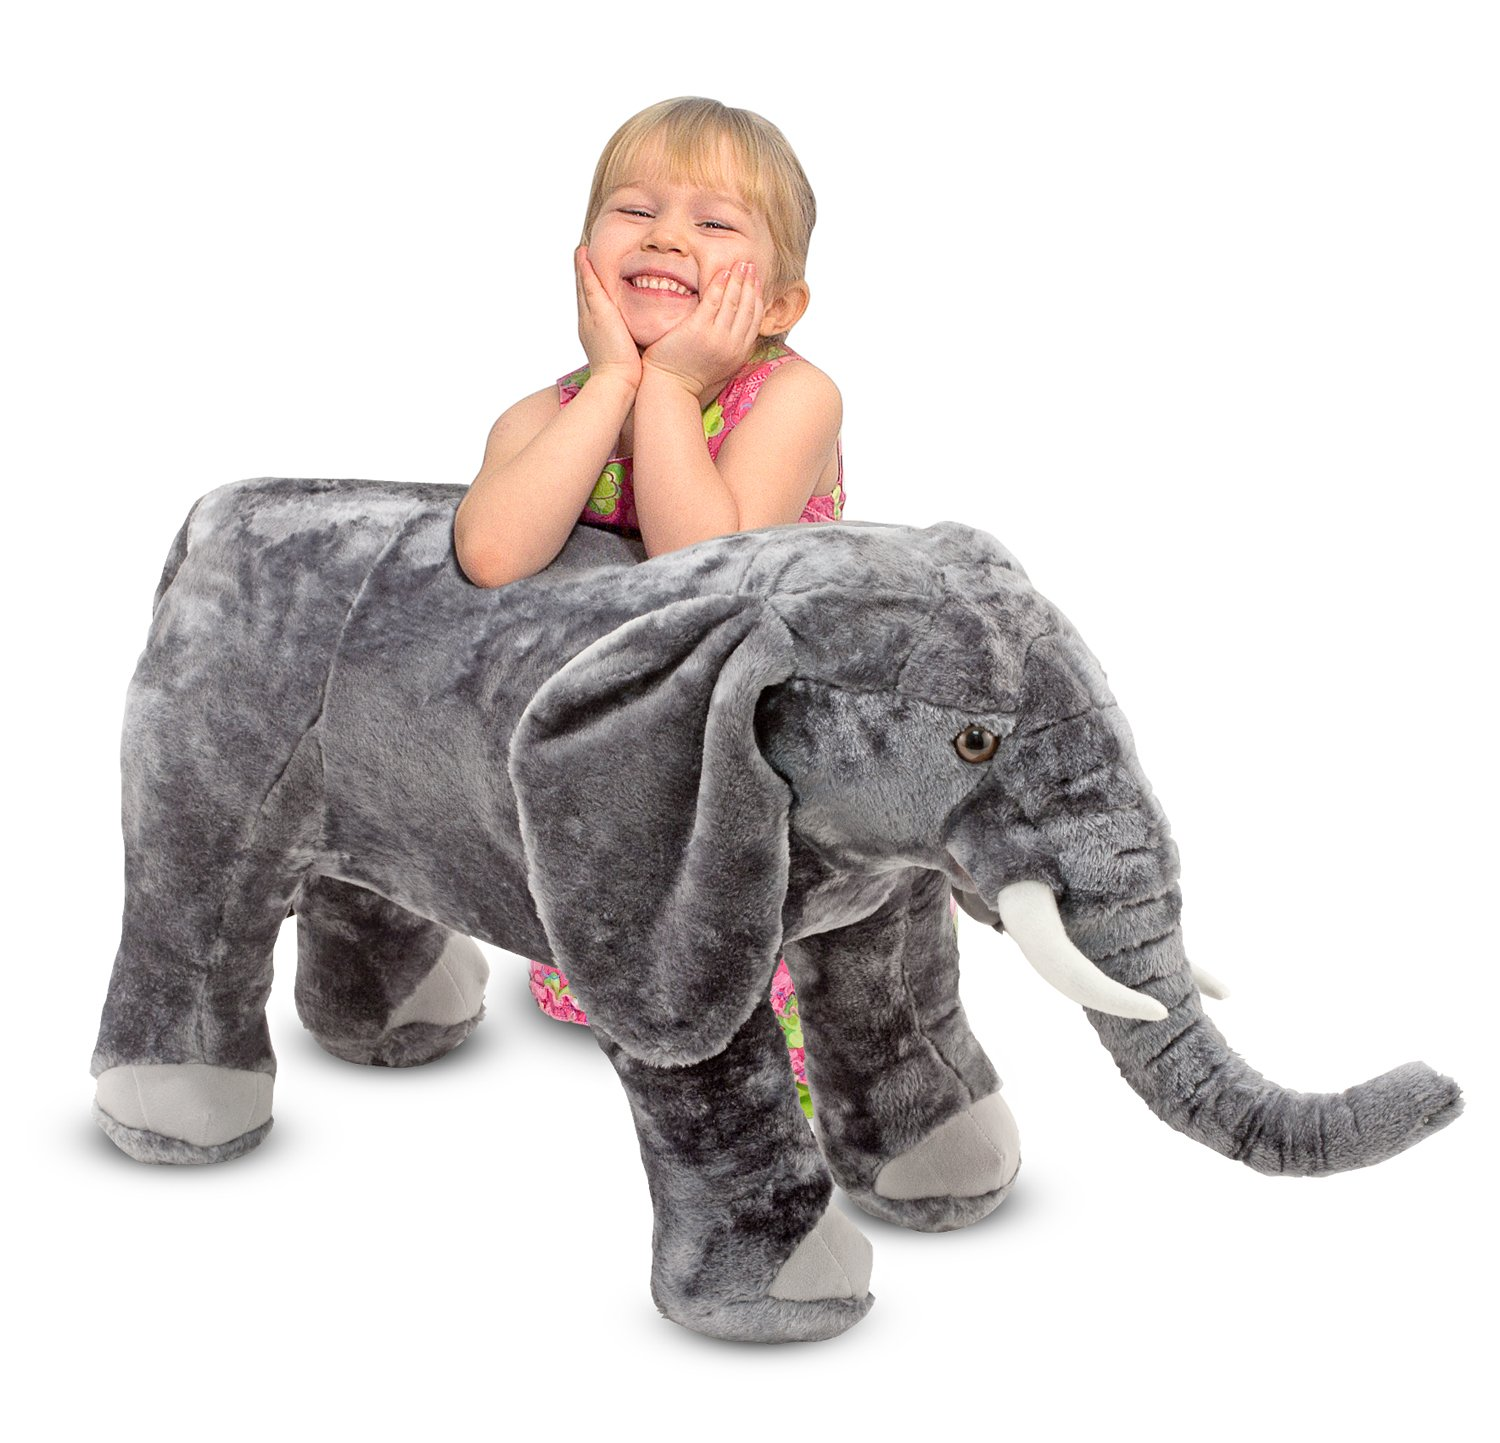 Melissa & Doug Giant Elephant - Lifelike Stuffed Animal (over 3 feet long) by Melissa & Doug